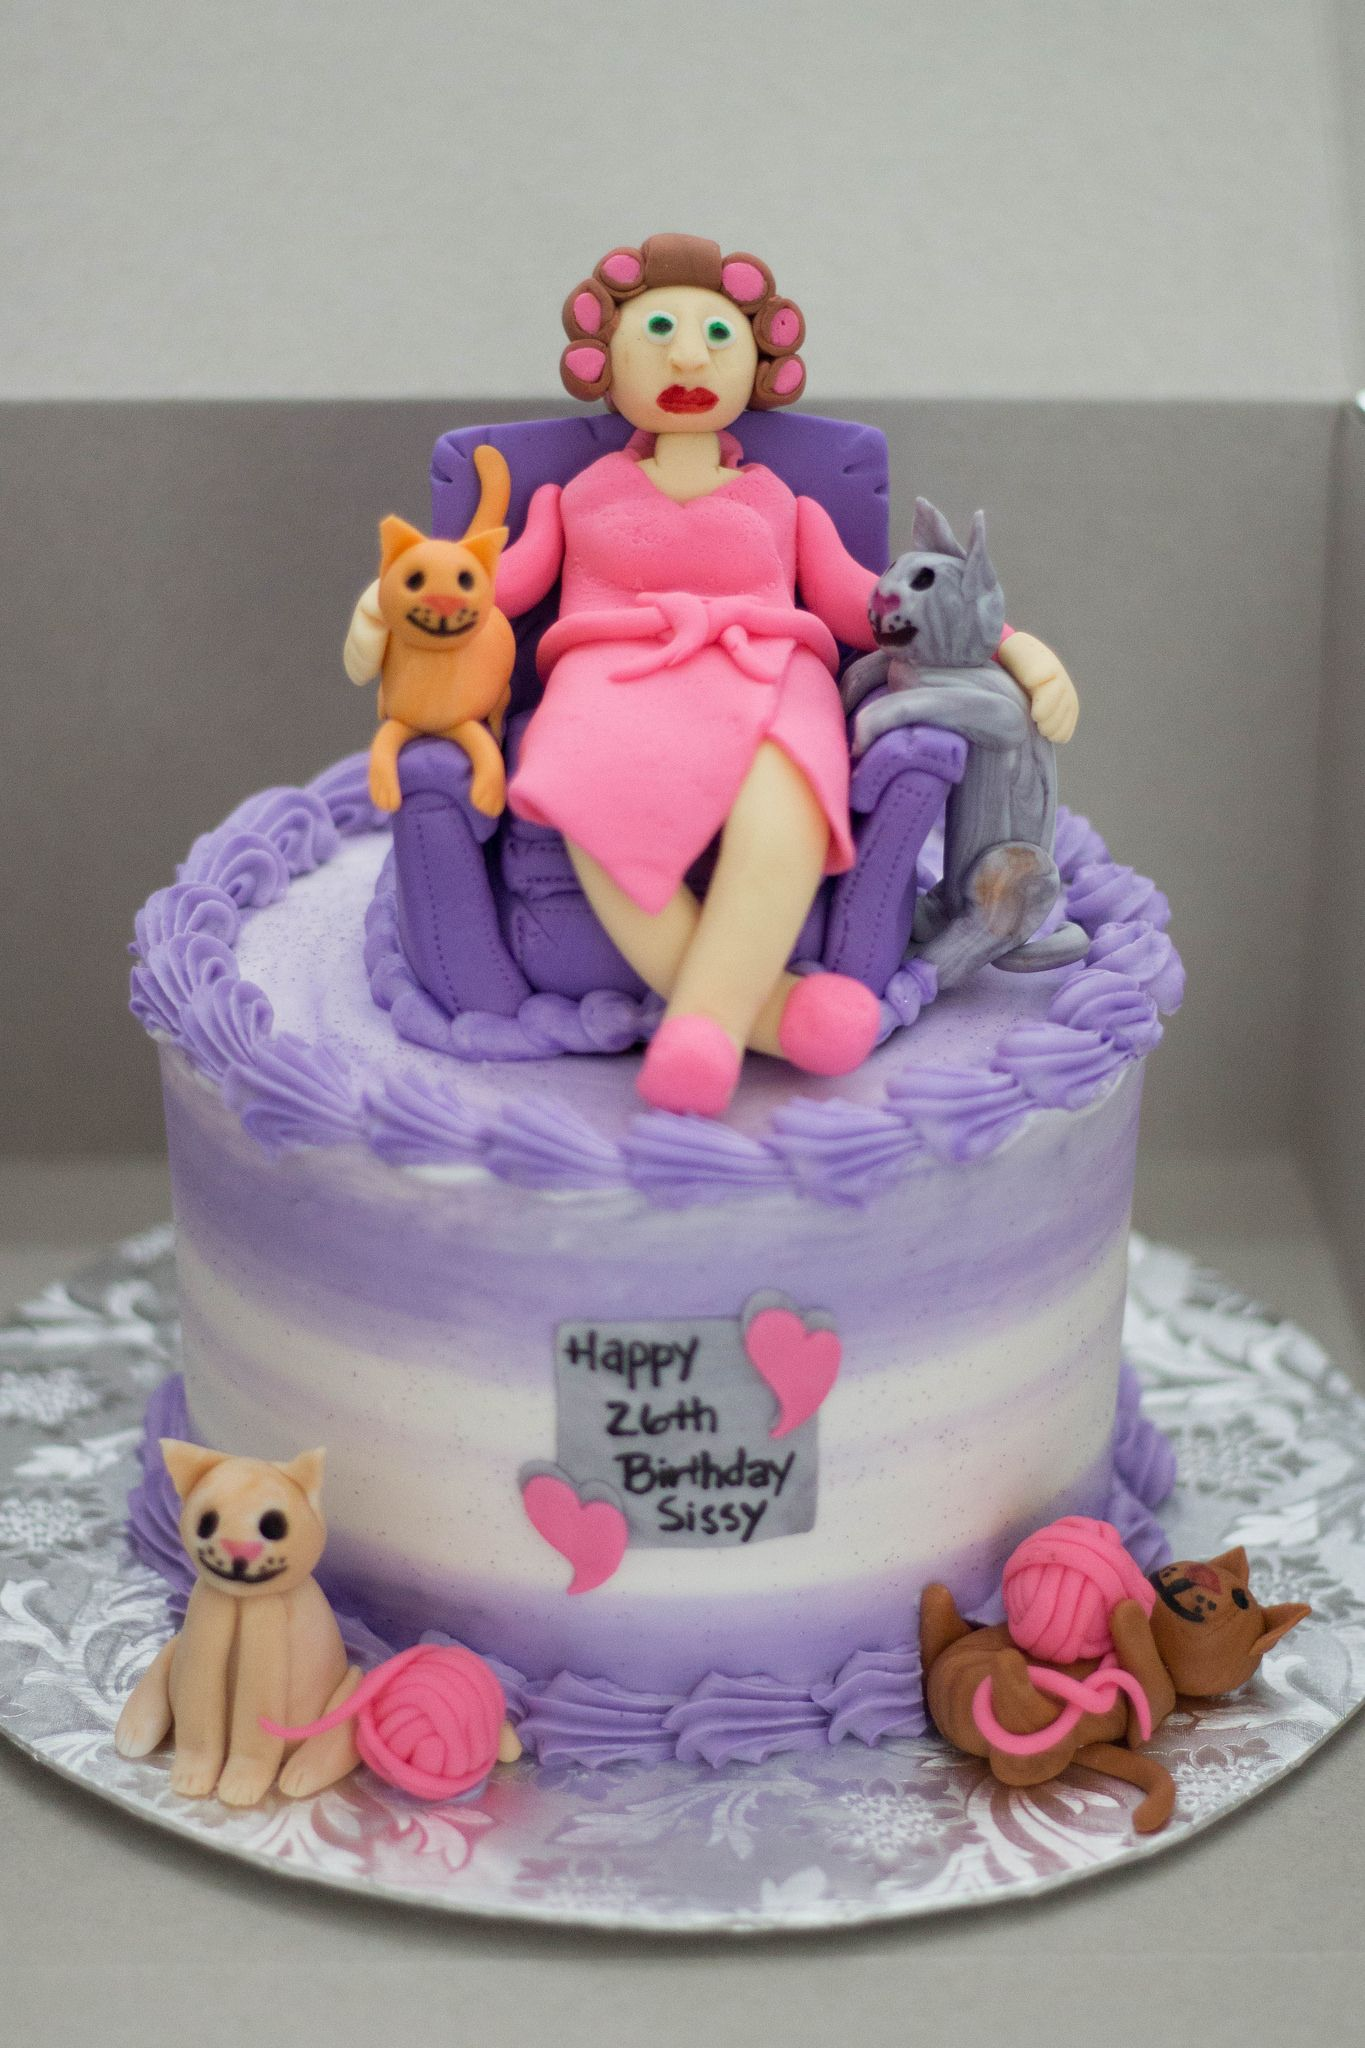 Fabulous Crazy Cat Lady Cake With Images Crazy Cat Lady Cake Cakes For Funny Birthday Cards Online Elaedamsfinfo